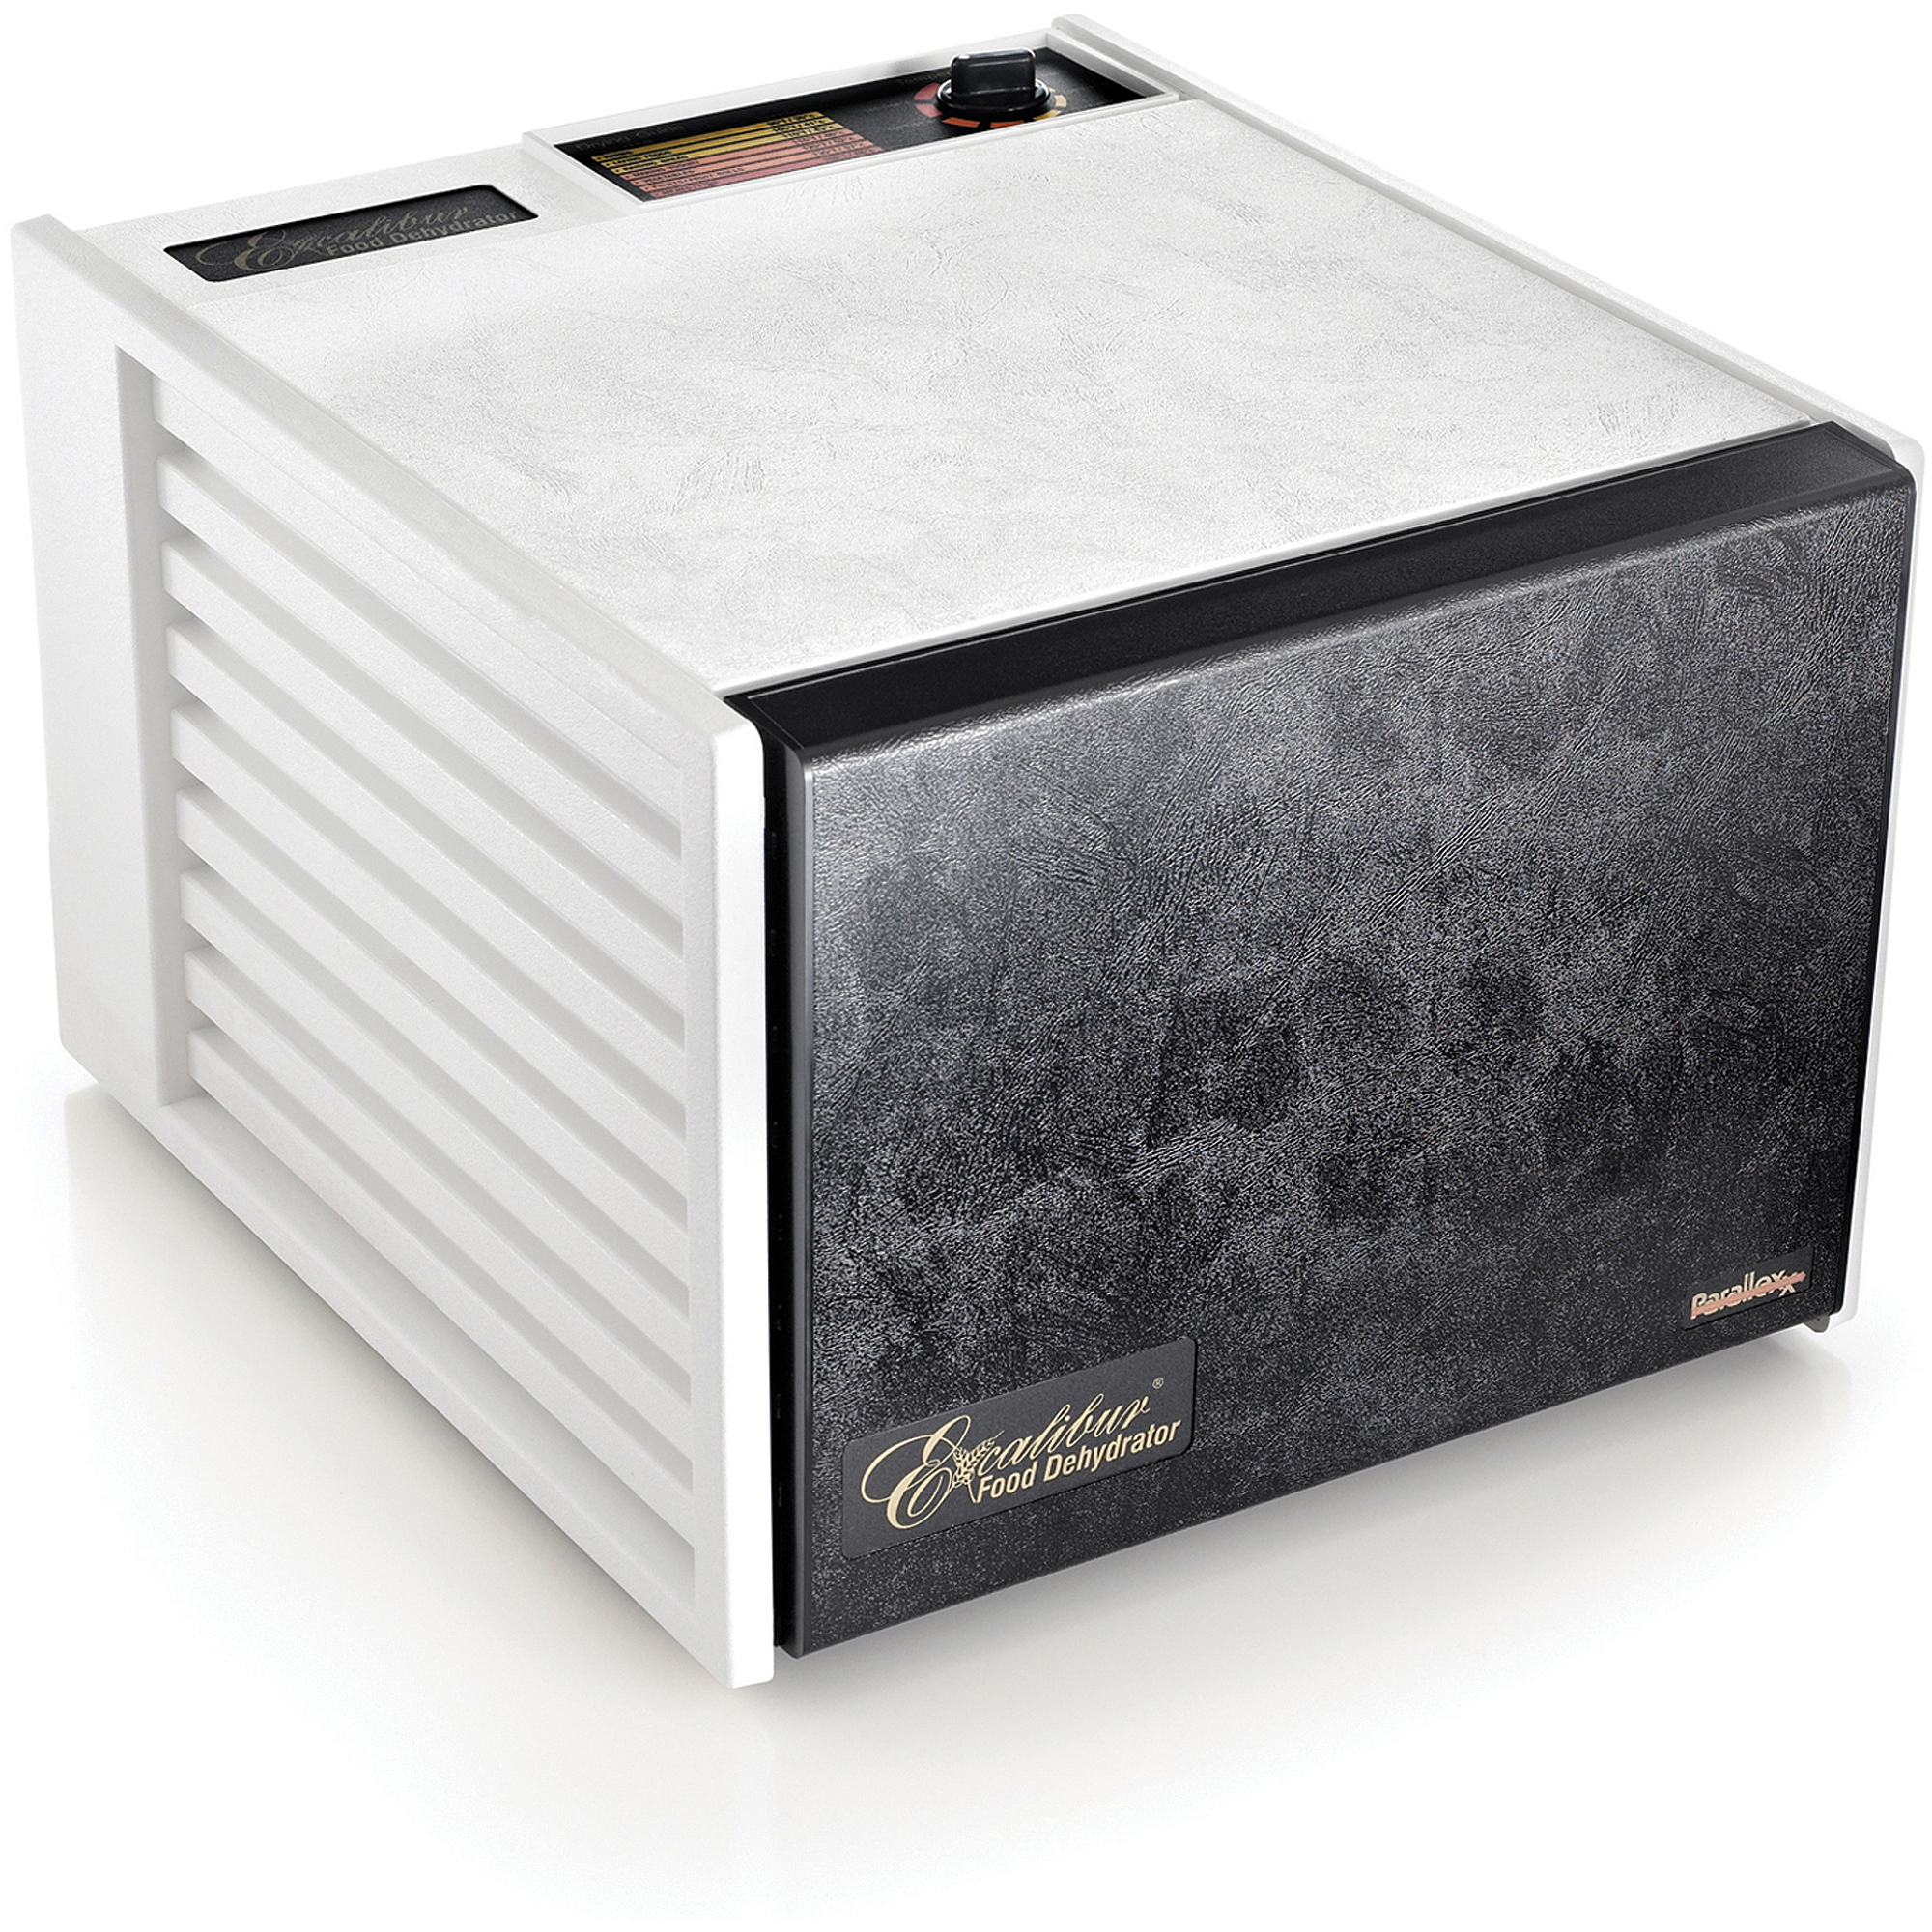 Excalibur 9-Tray Dehydrator Deluxe, White